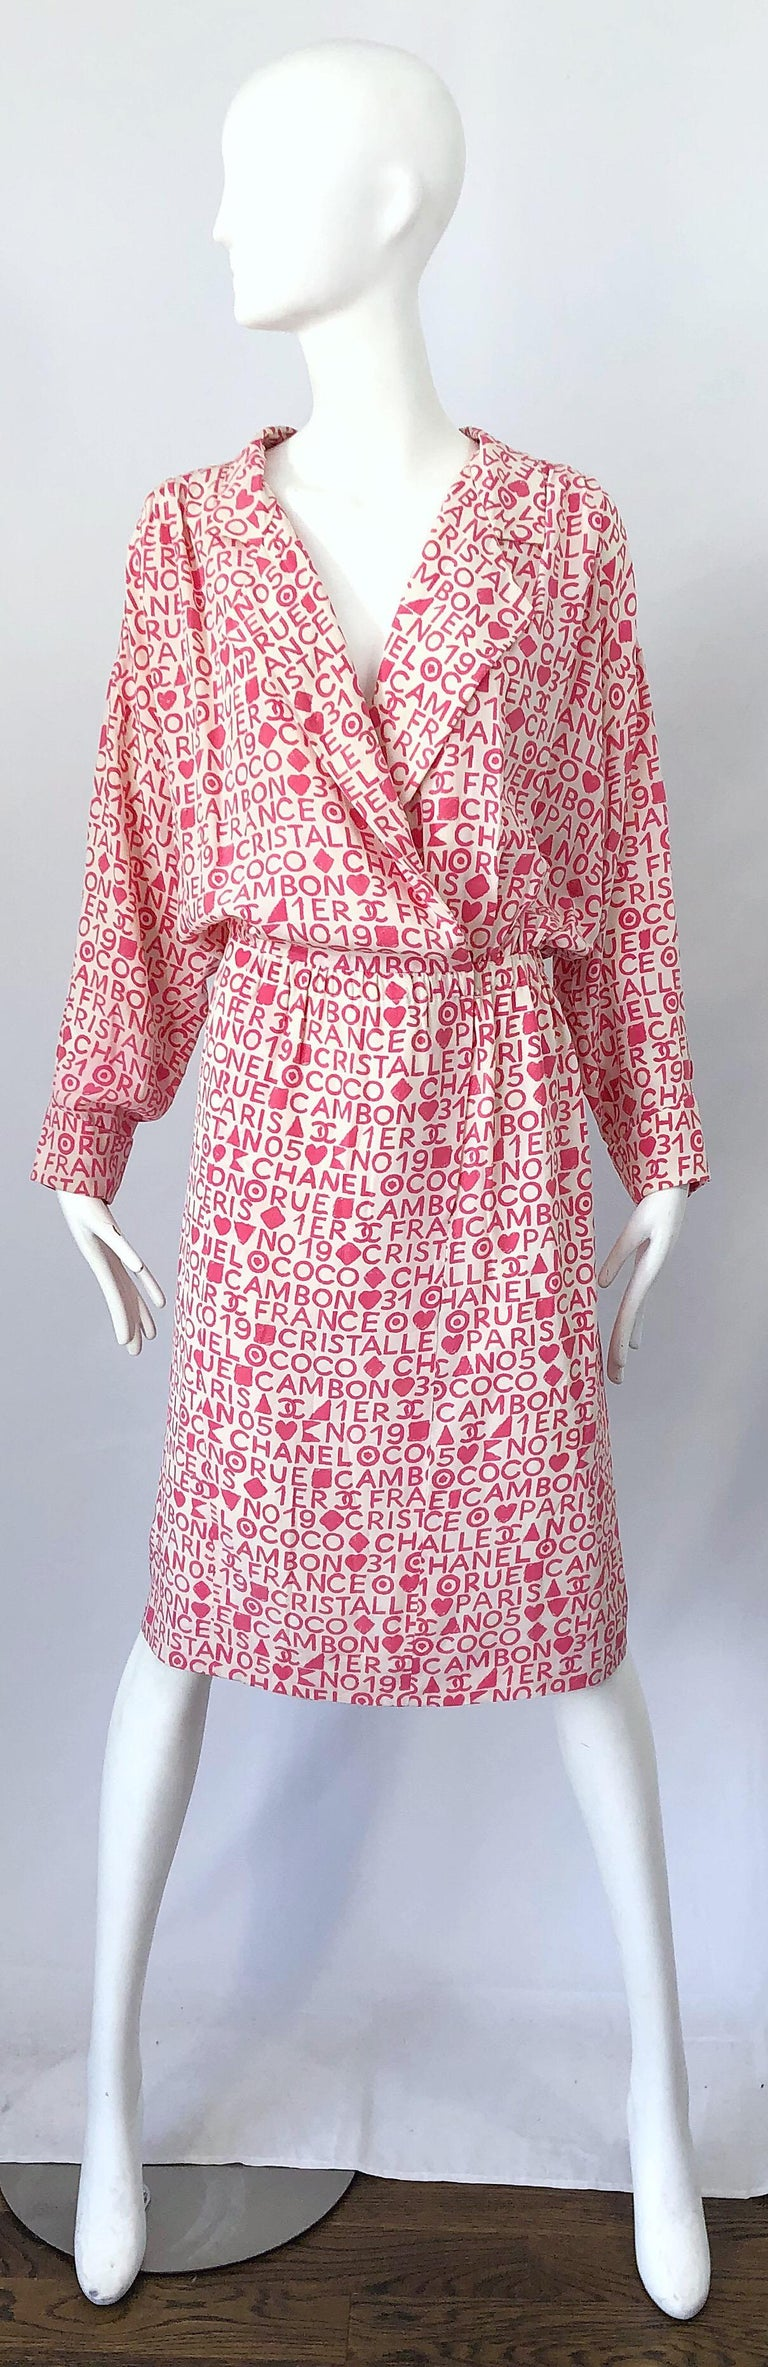 Vintage Chanel Size 44 / 14 Pink and White Logo Print 1980s Silk 80s Shirt Dress For Sale 11